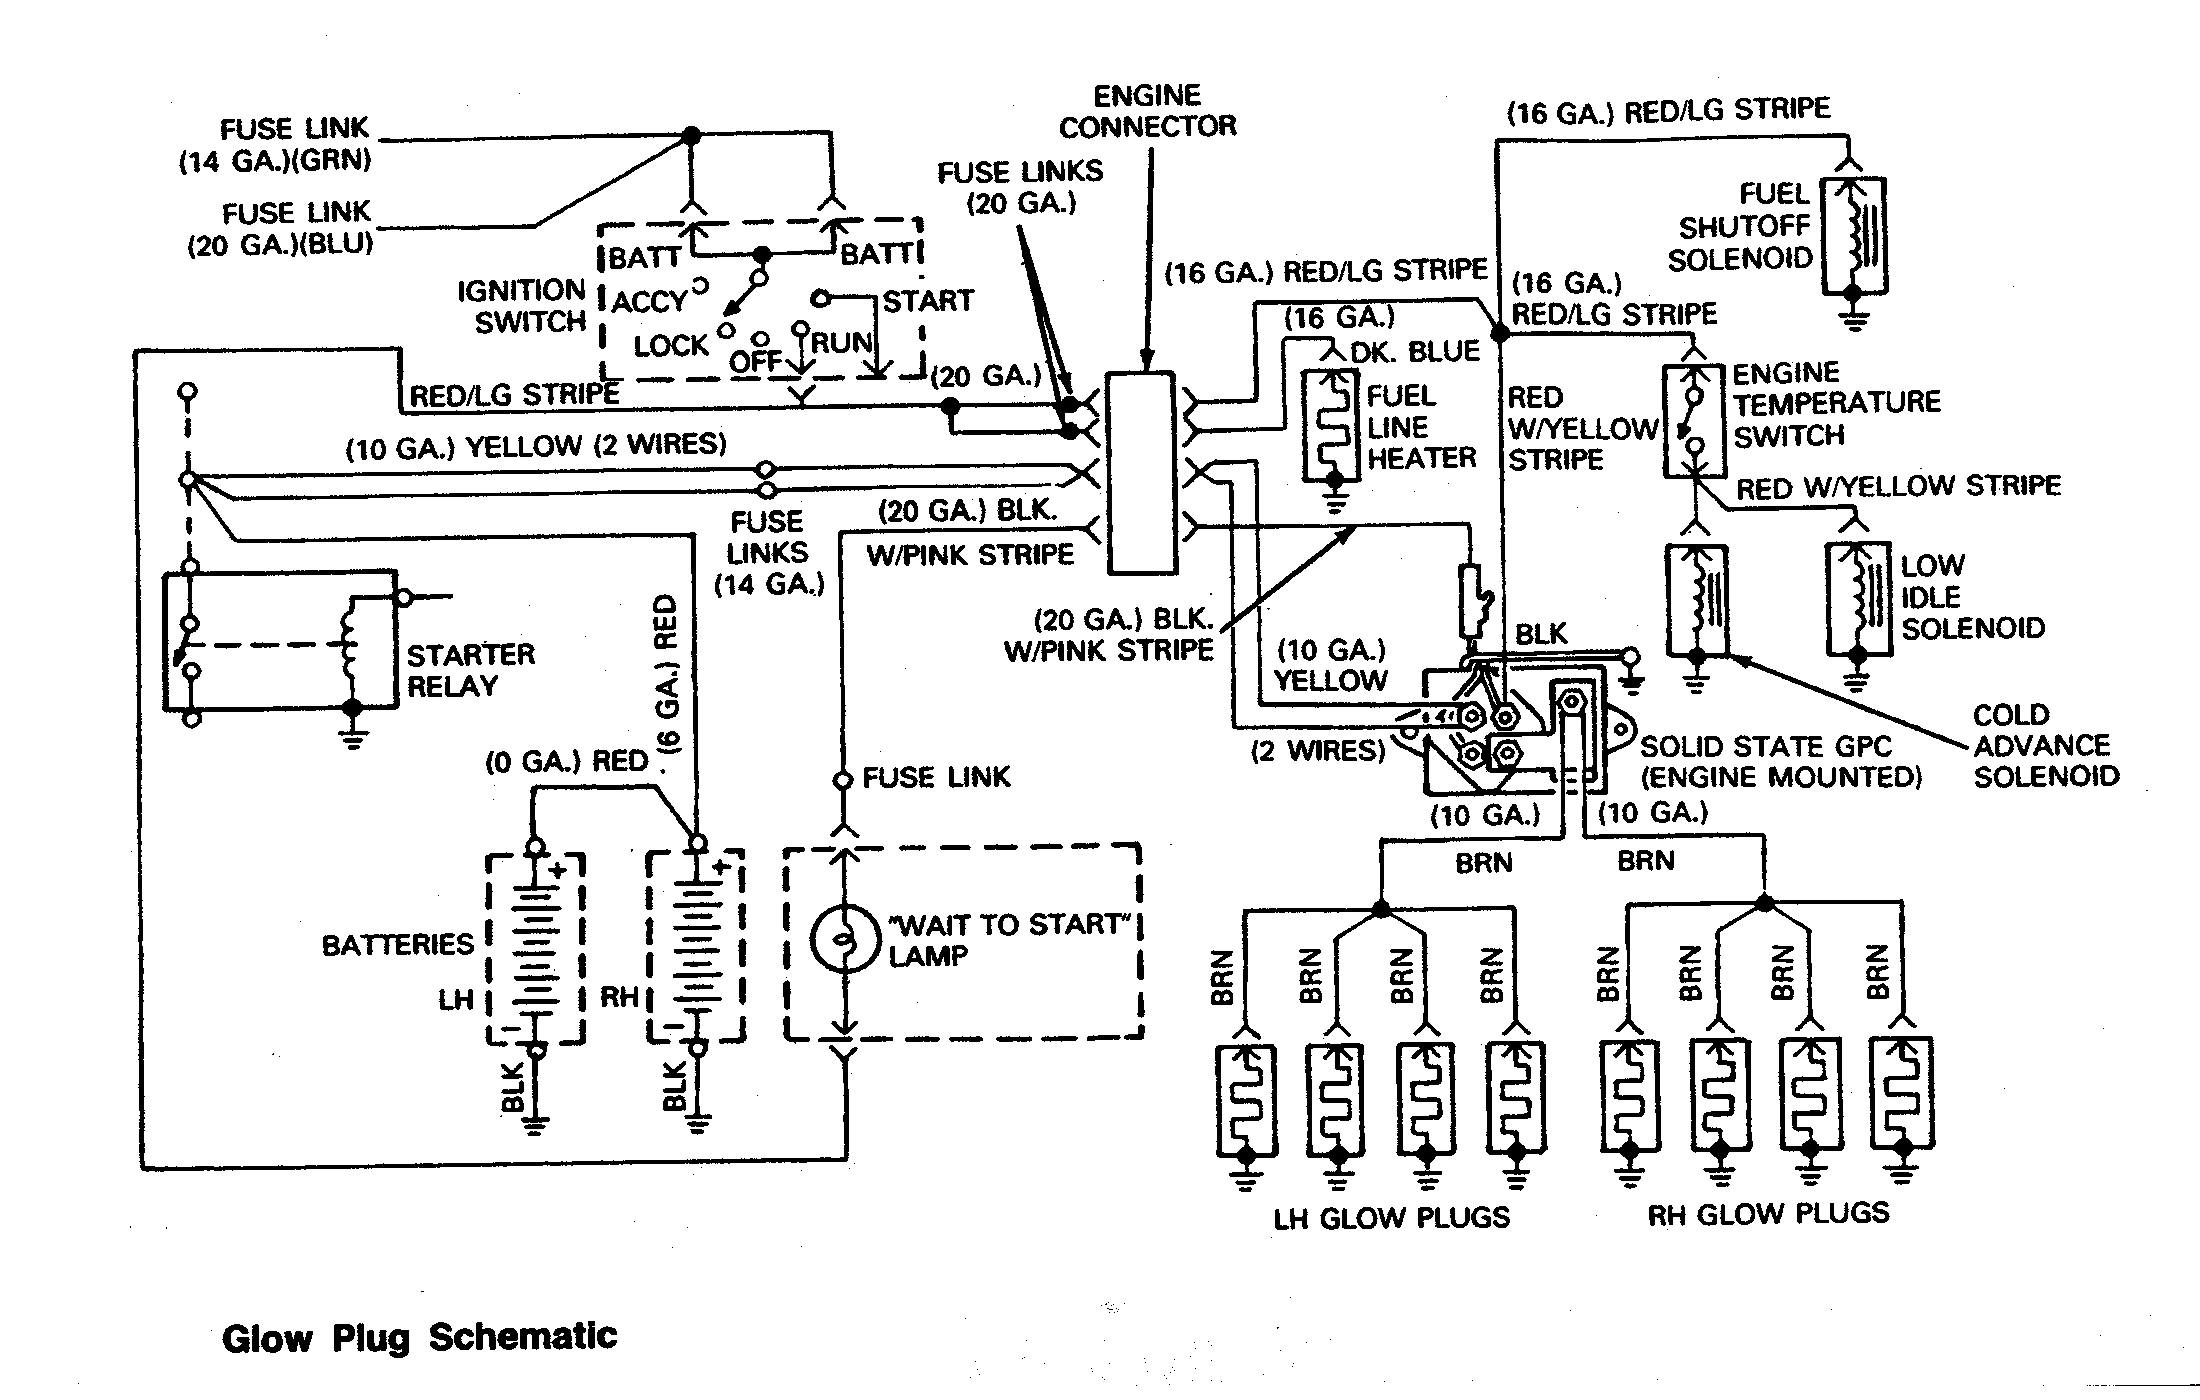 2006 F250 Wiring Diagram from svseeker.com